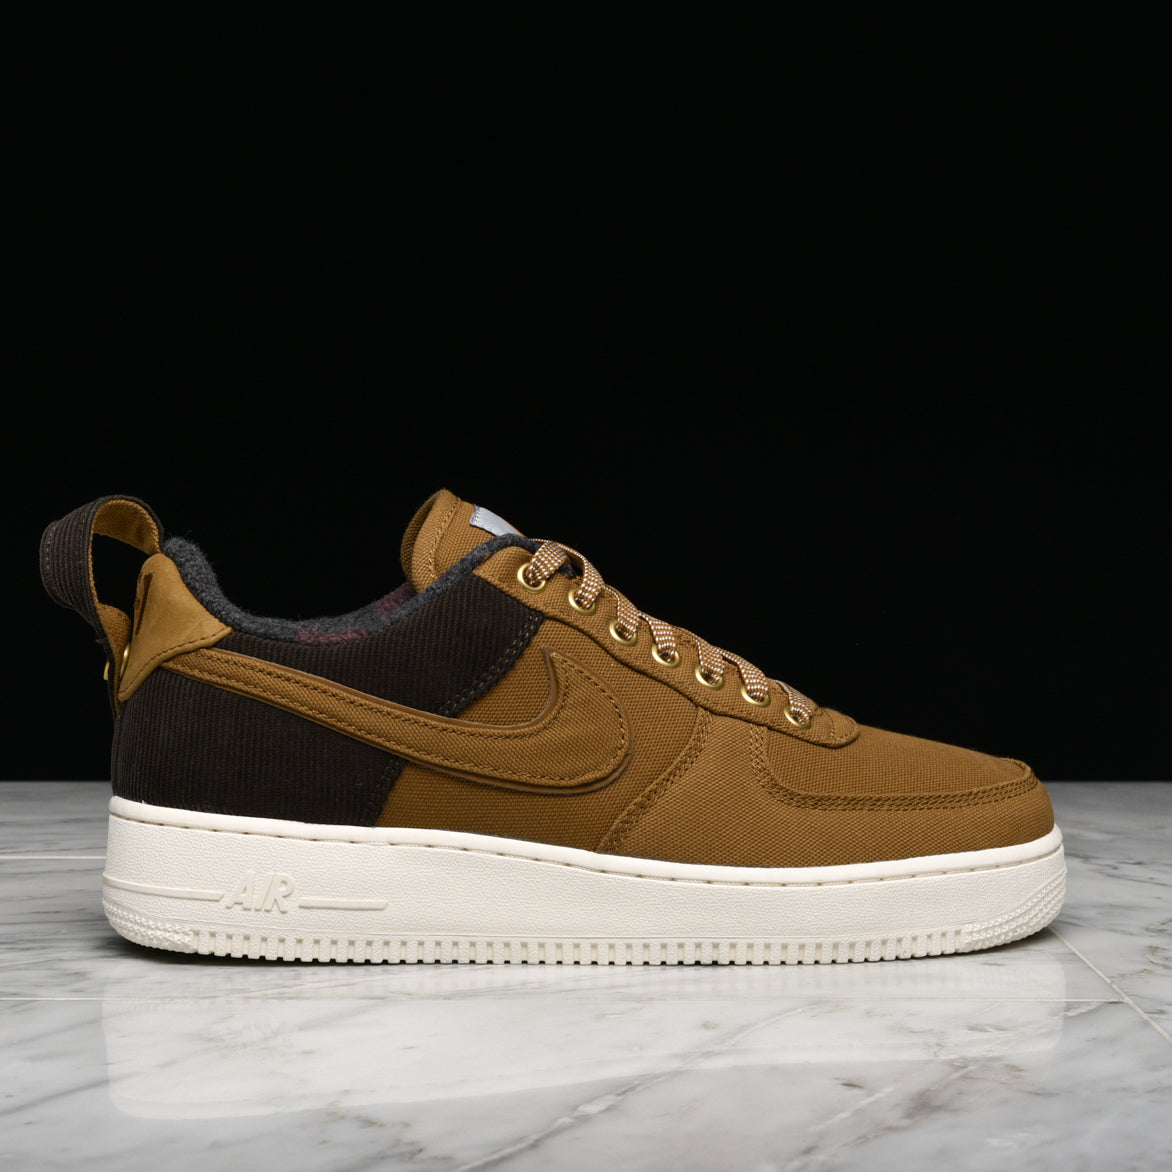 NIKE X CARHARTT AIR FORCE 1 '07 PRM WIP ALEBROWNSAIL